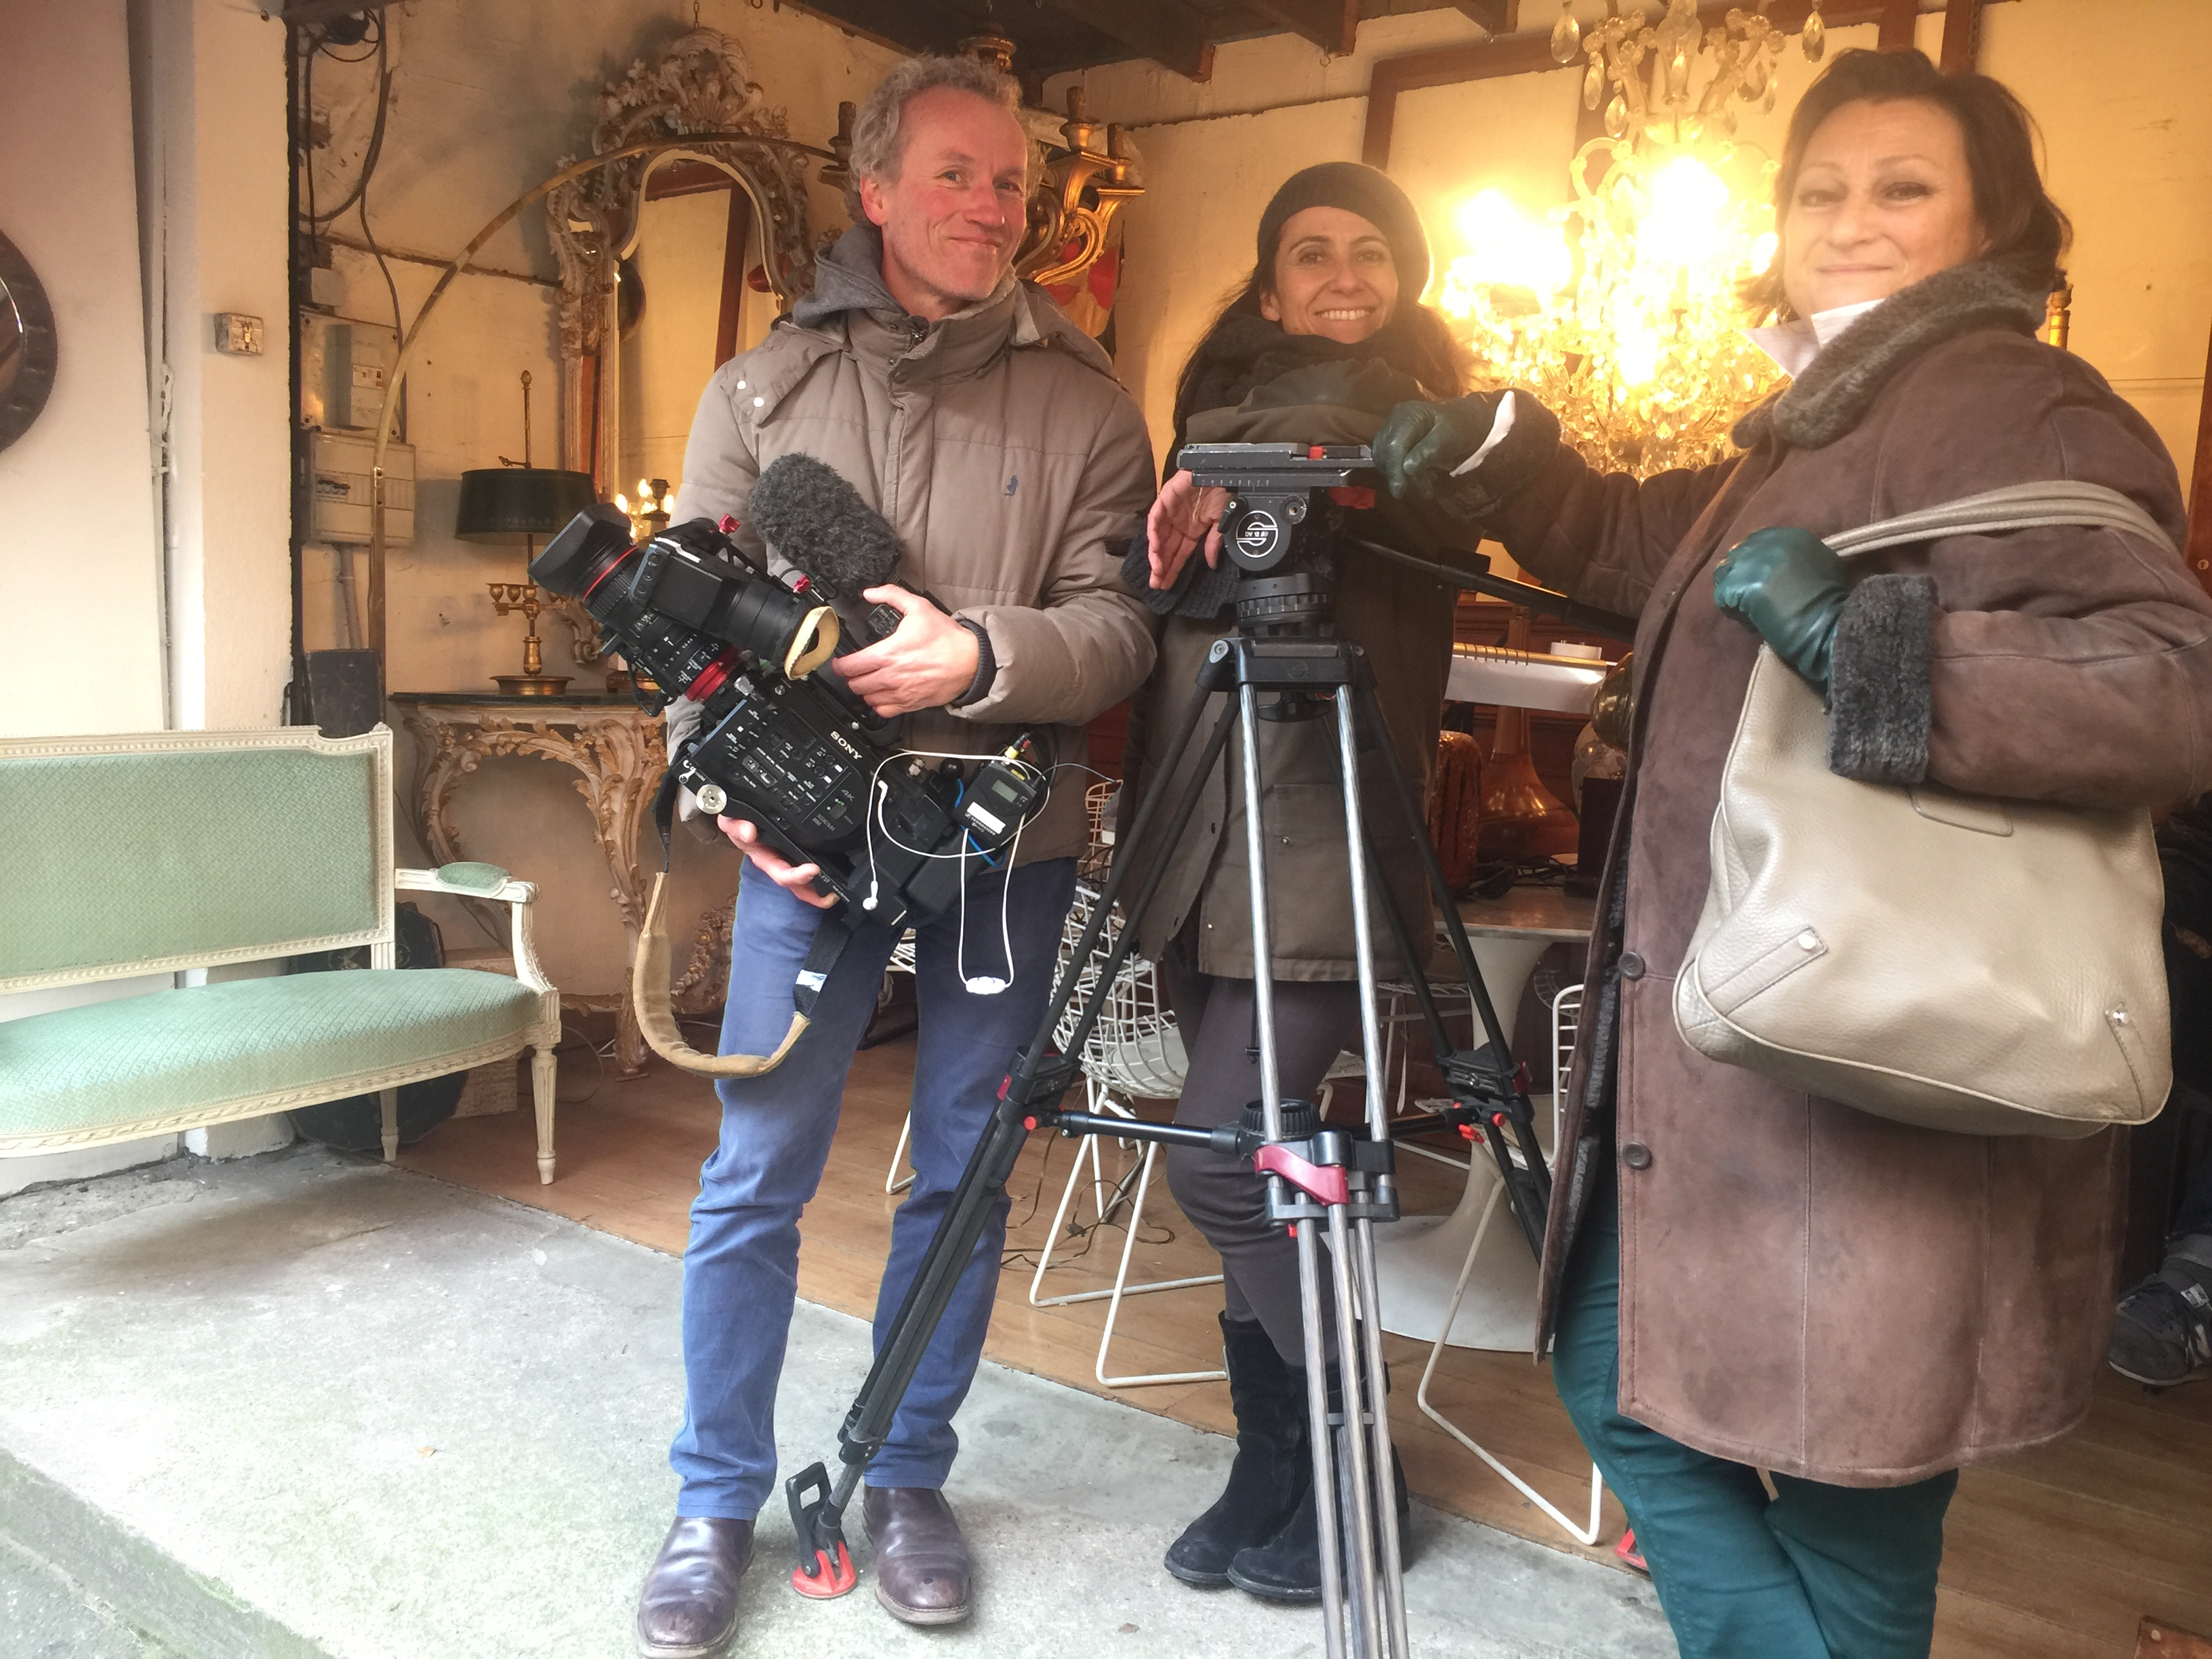 Diva Guide Danielle filming with TF1